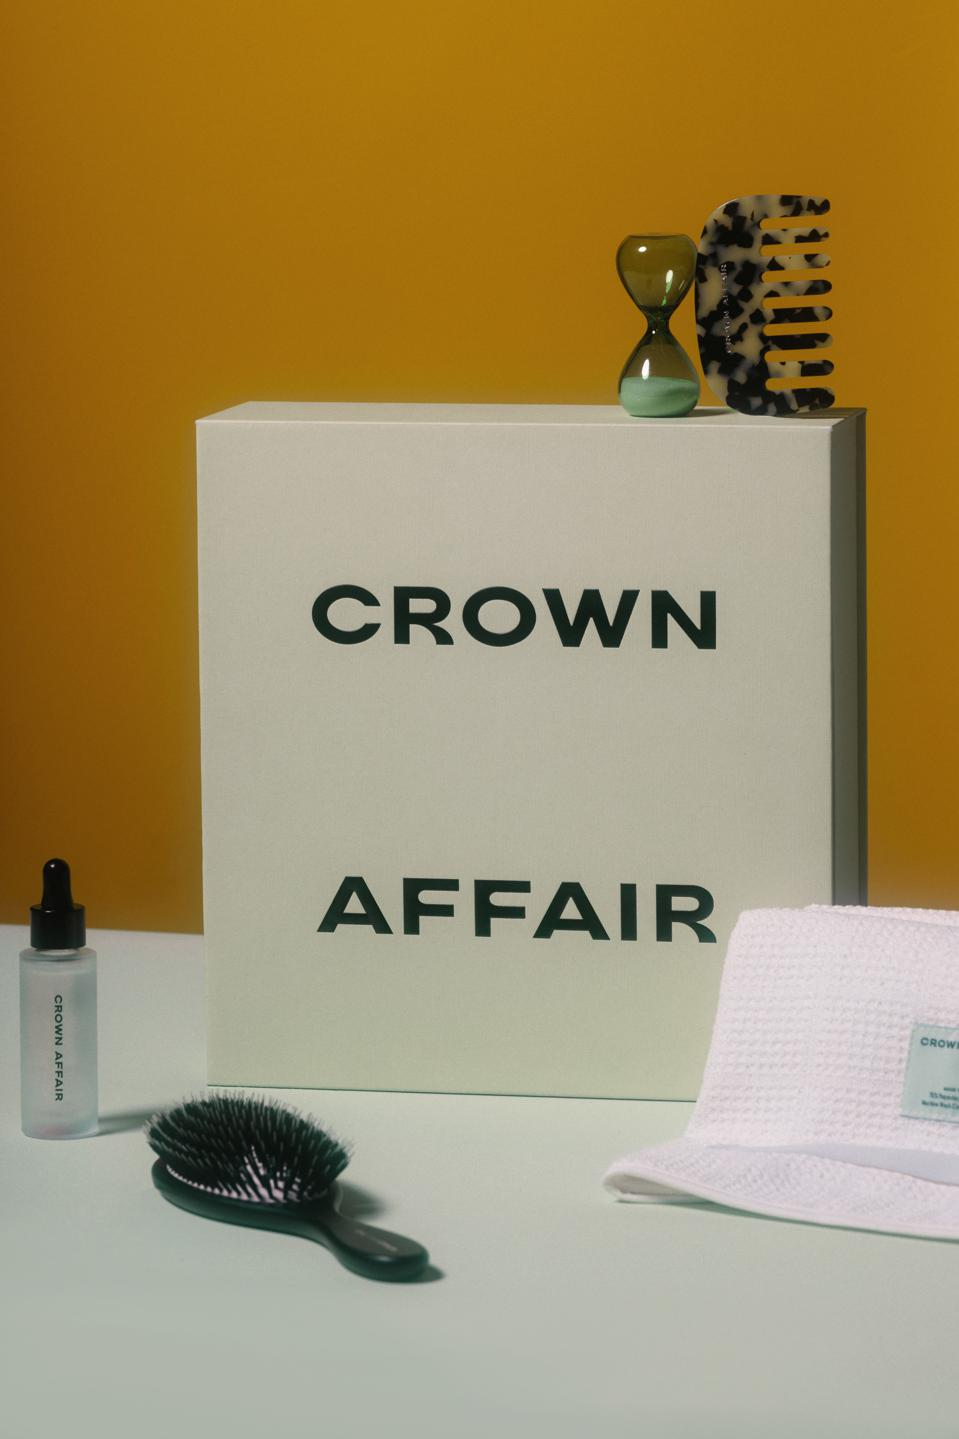 Crown Affair products